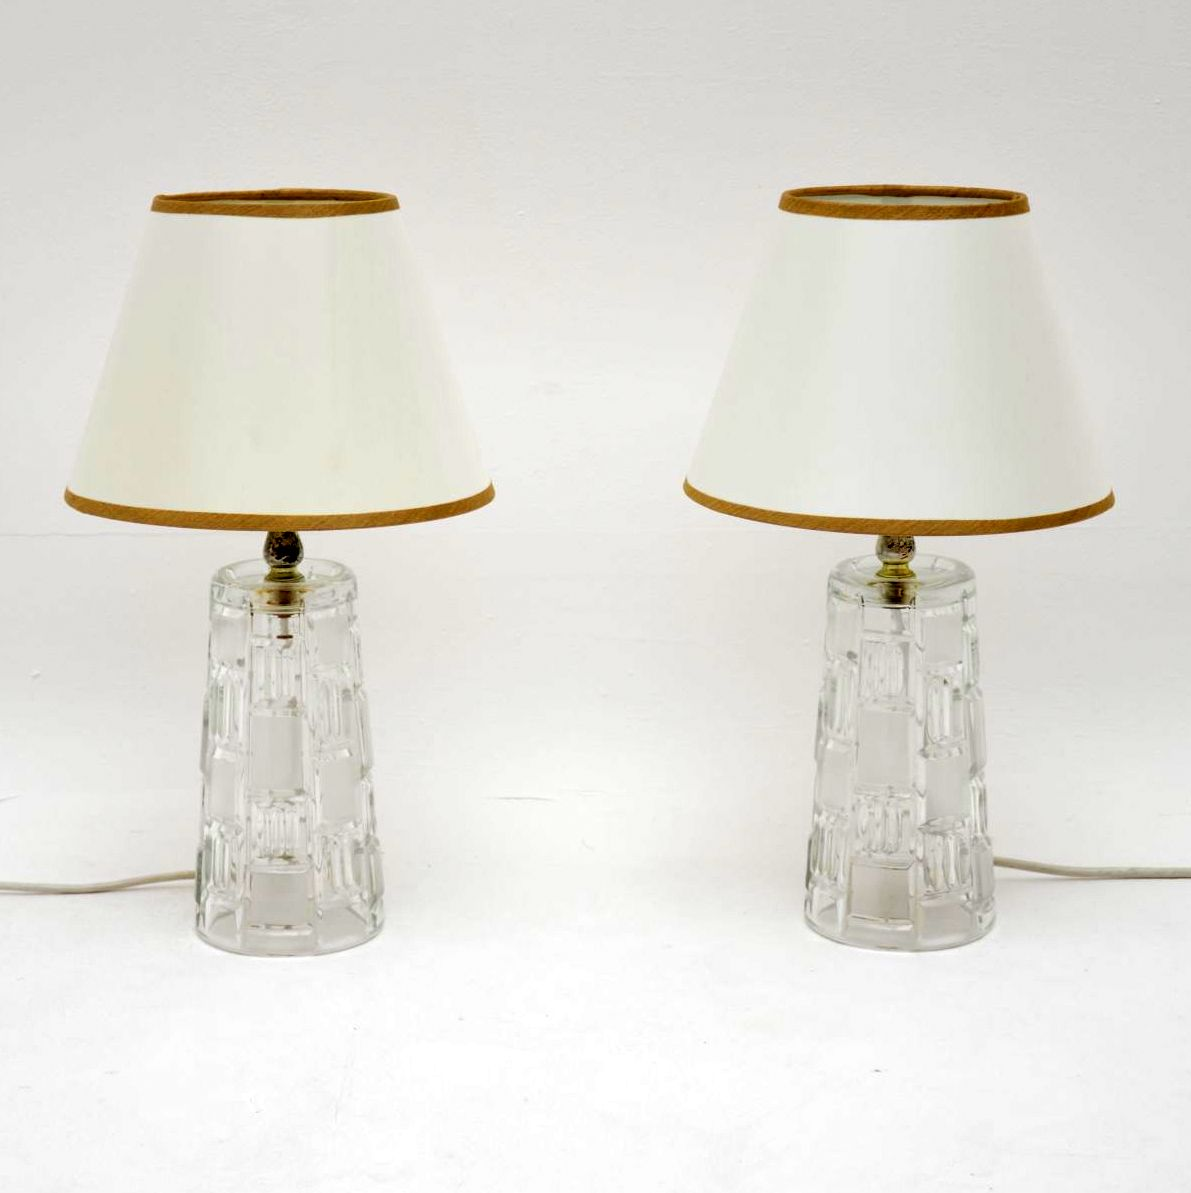 pair of retro vintage glass table lamps